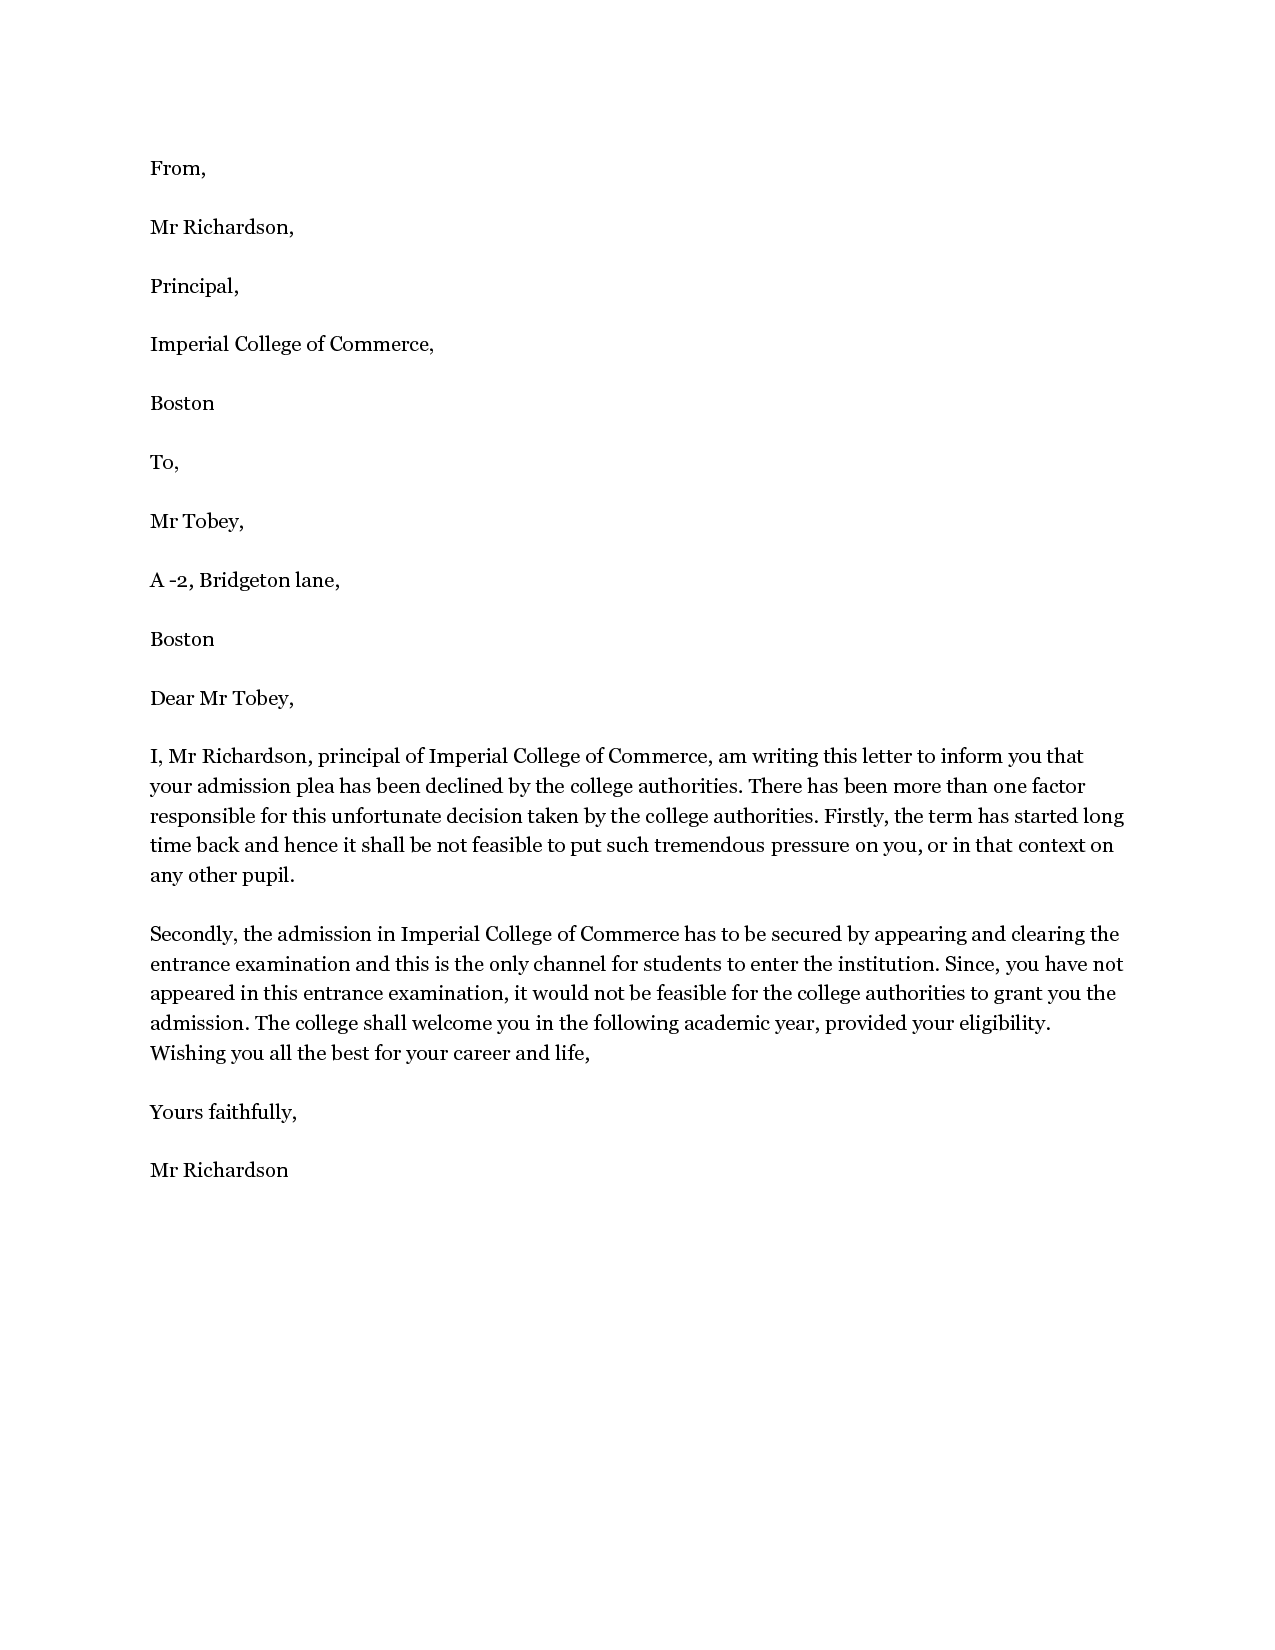 Rejection Job Offer Candidate Decline Letter Employers Of Choice